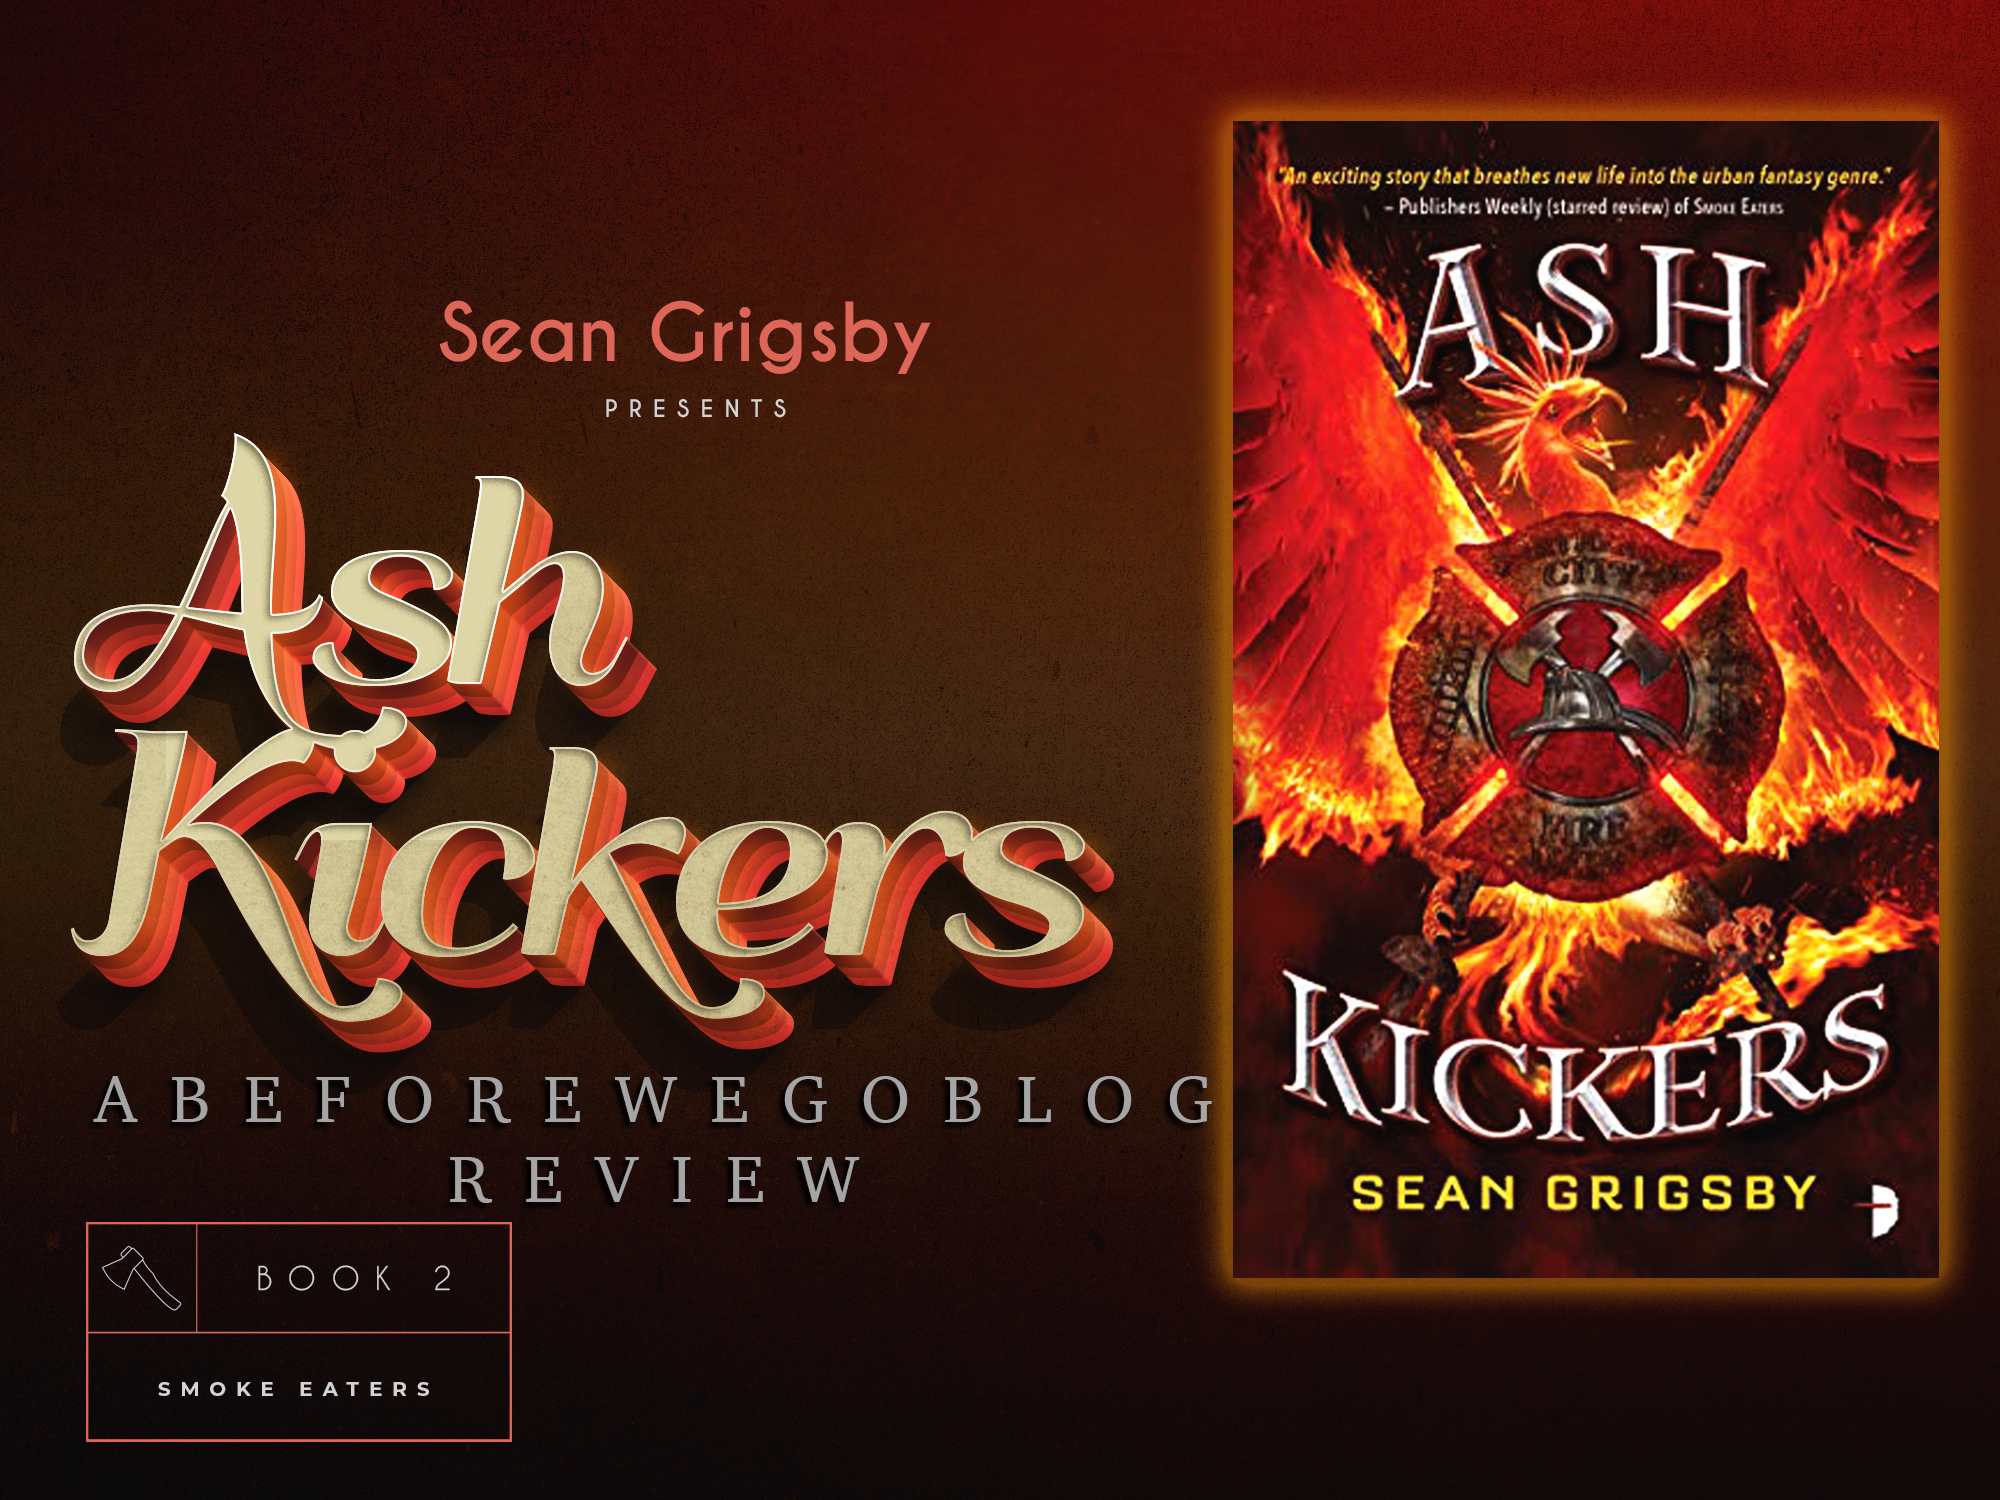 Review of Ash Kickers by Sean Grigsby